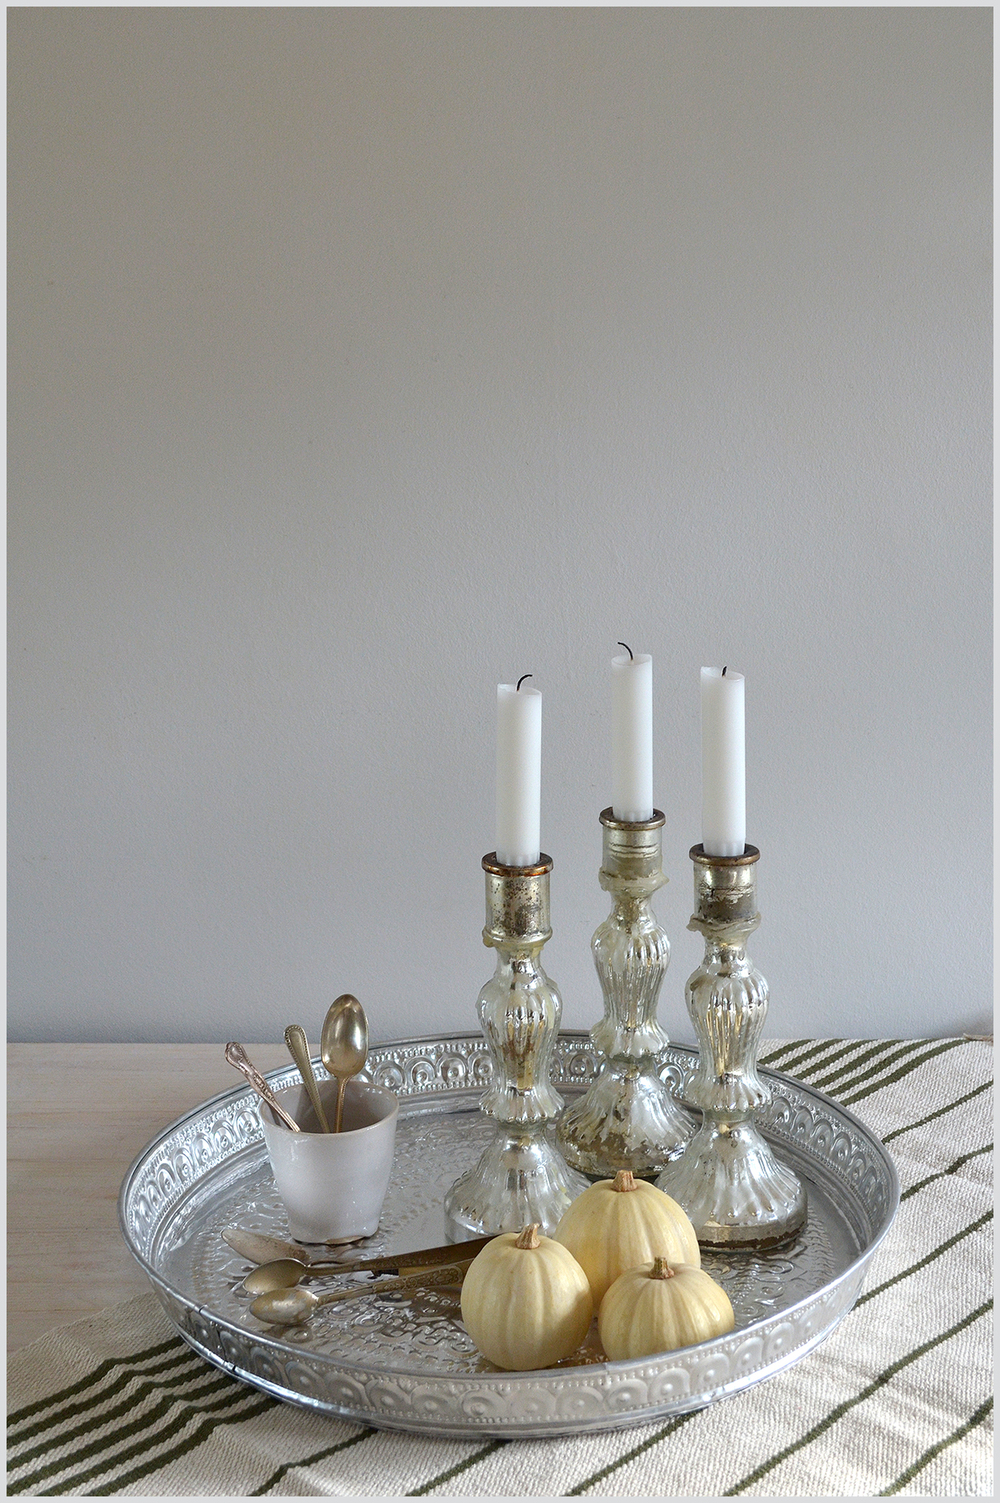 Silver tray and candleholders